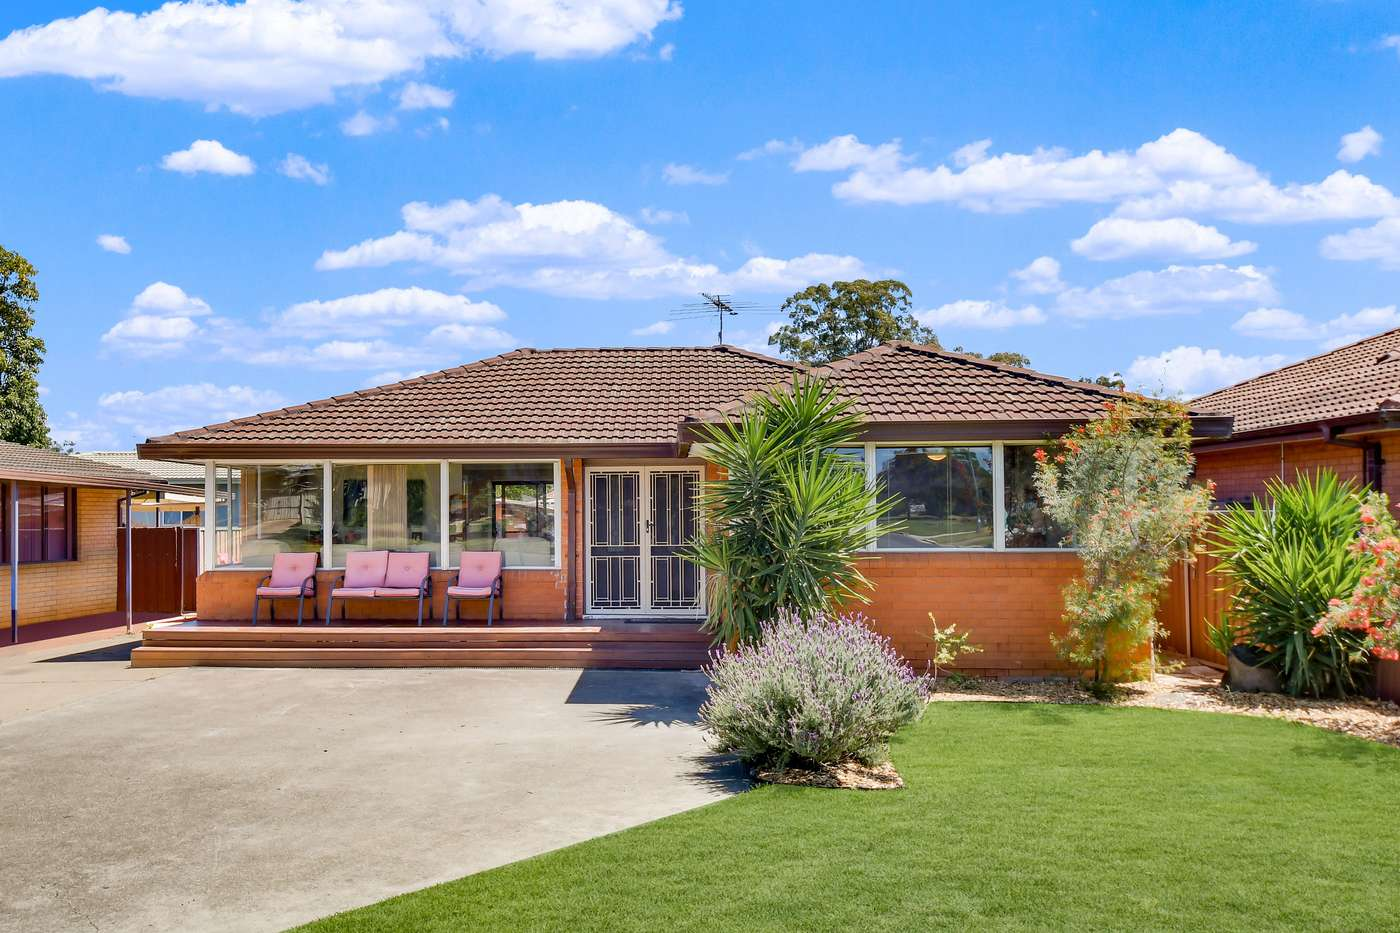 Main view of Homely house listing, 33 Glencoe Avenue, Werrington County, NSW 2747